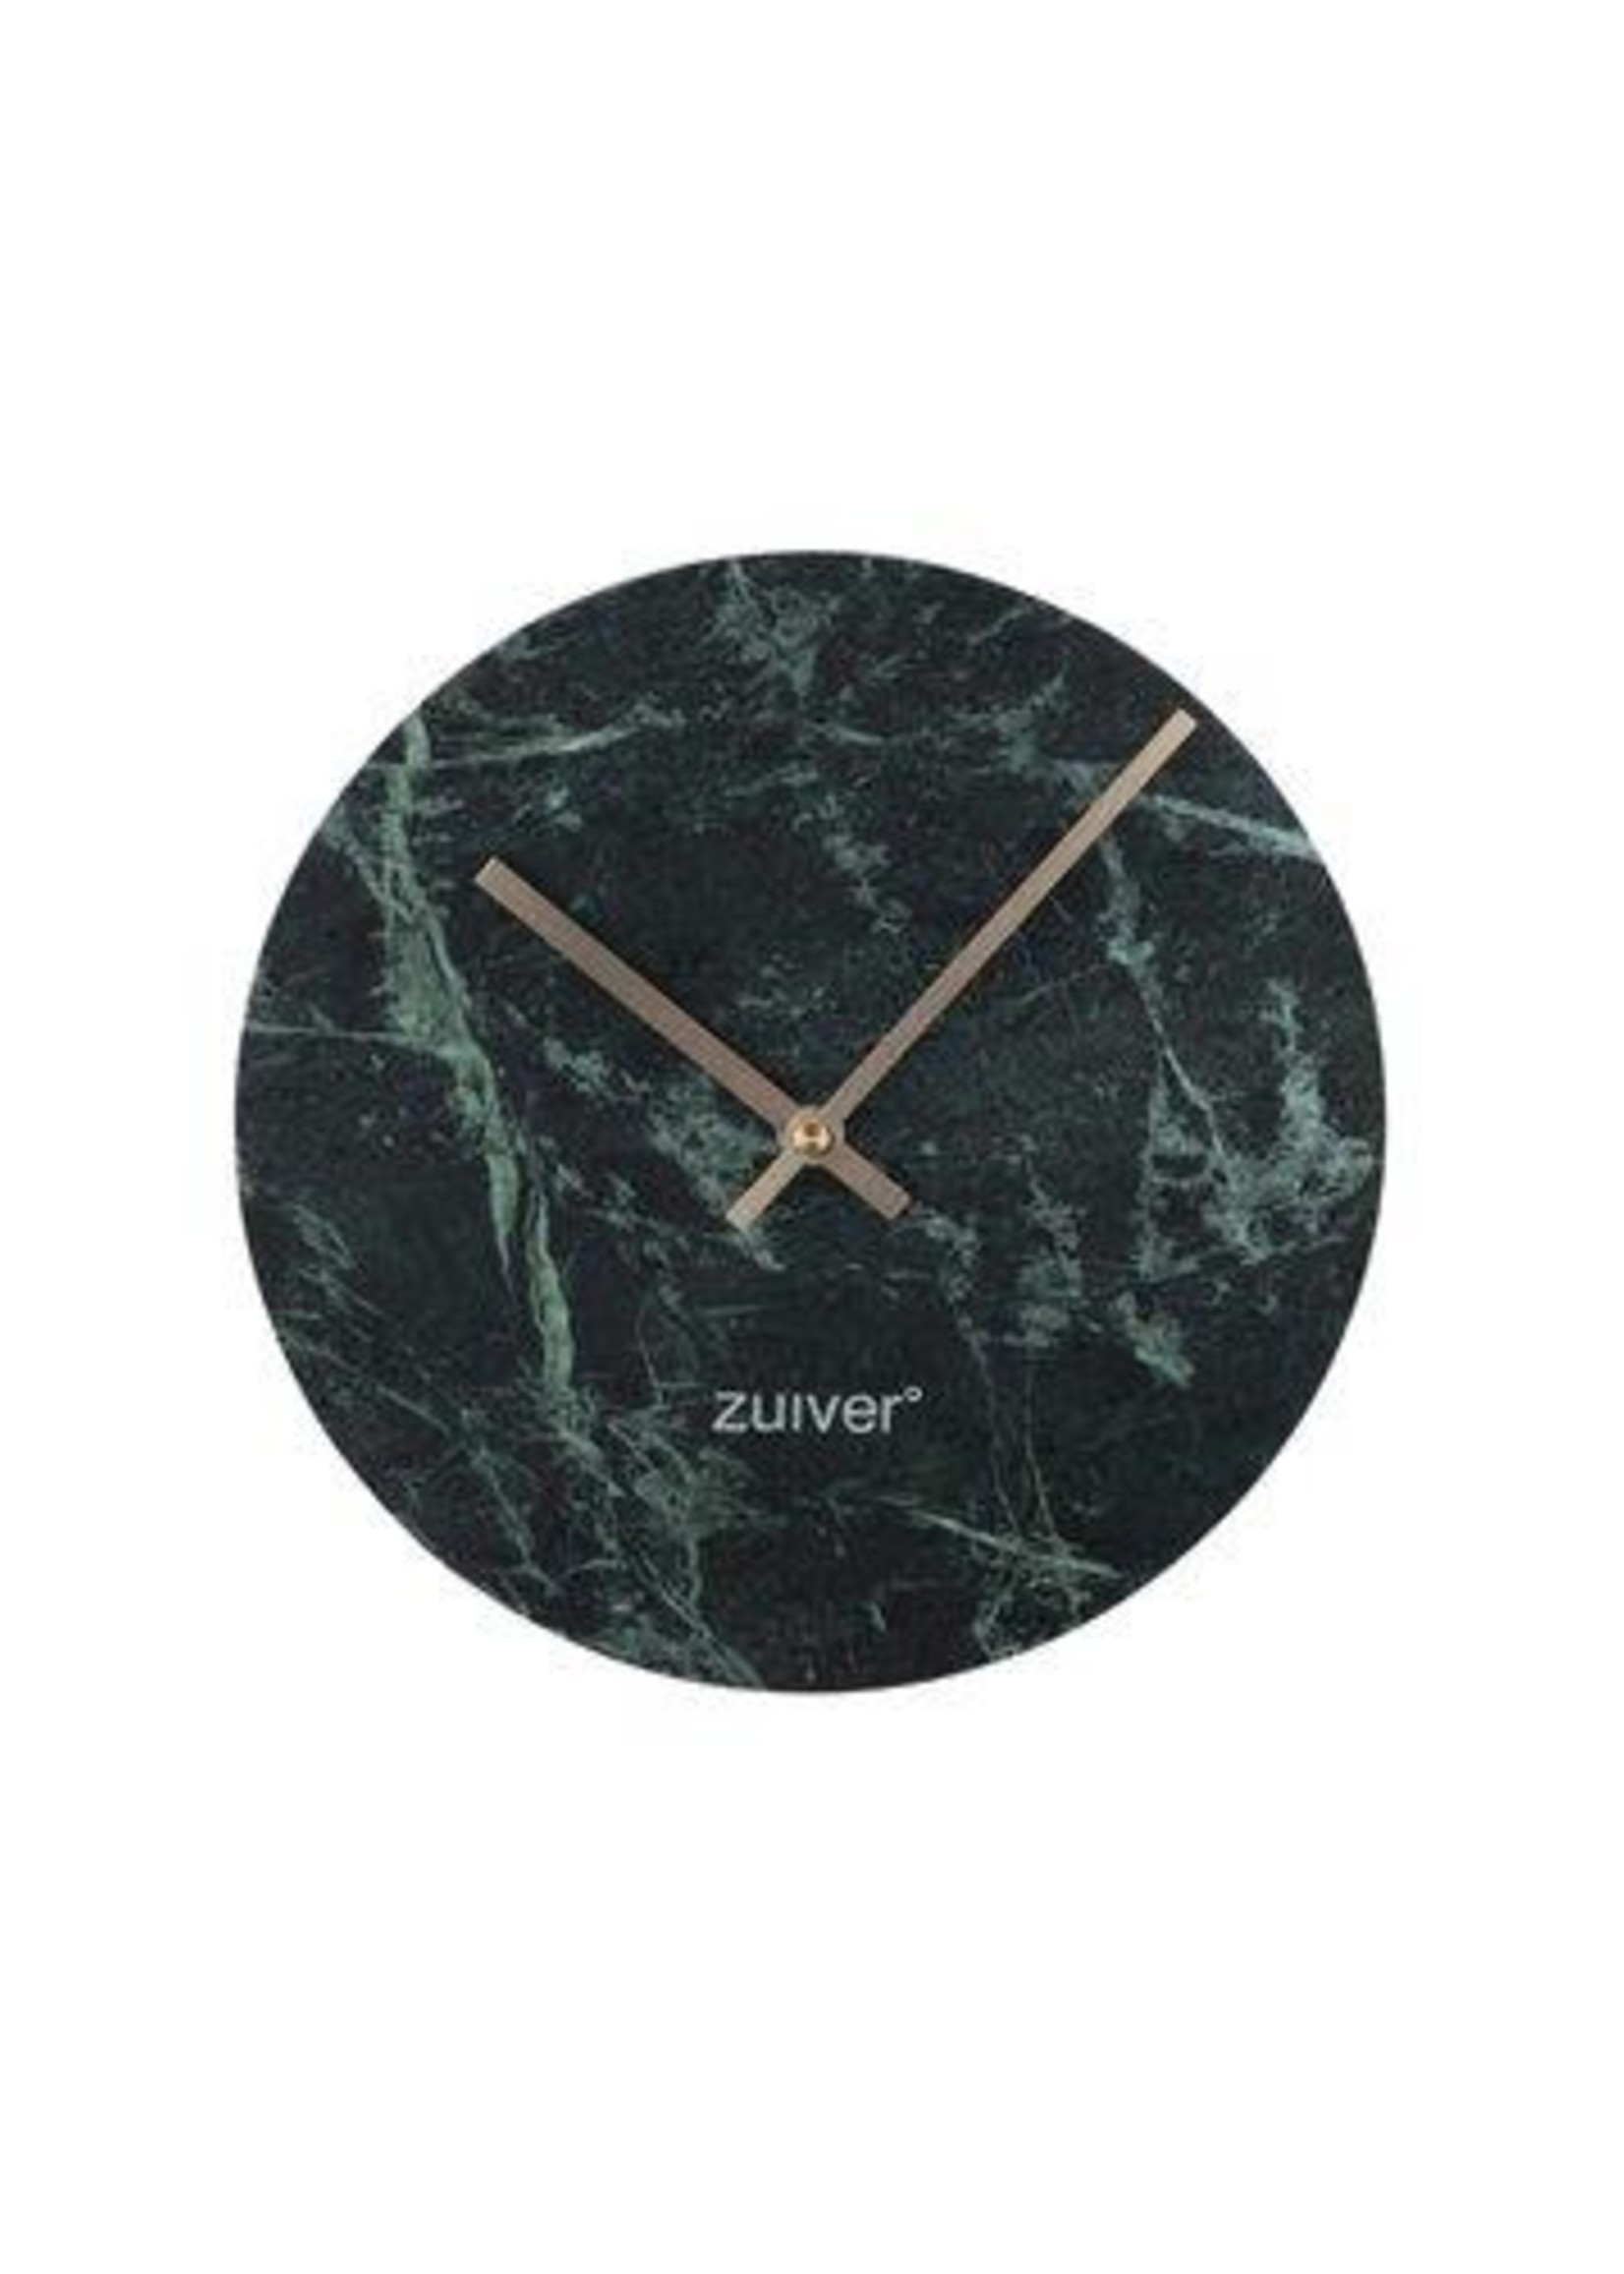 Zuiver Marble wall time clock green